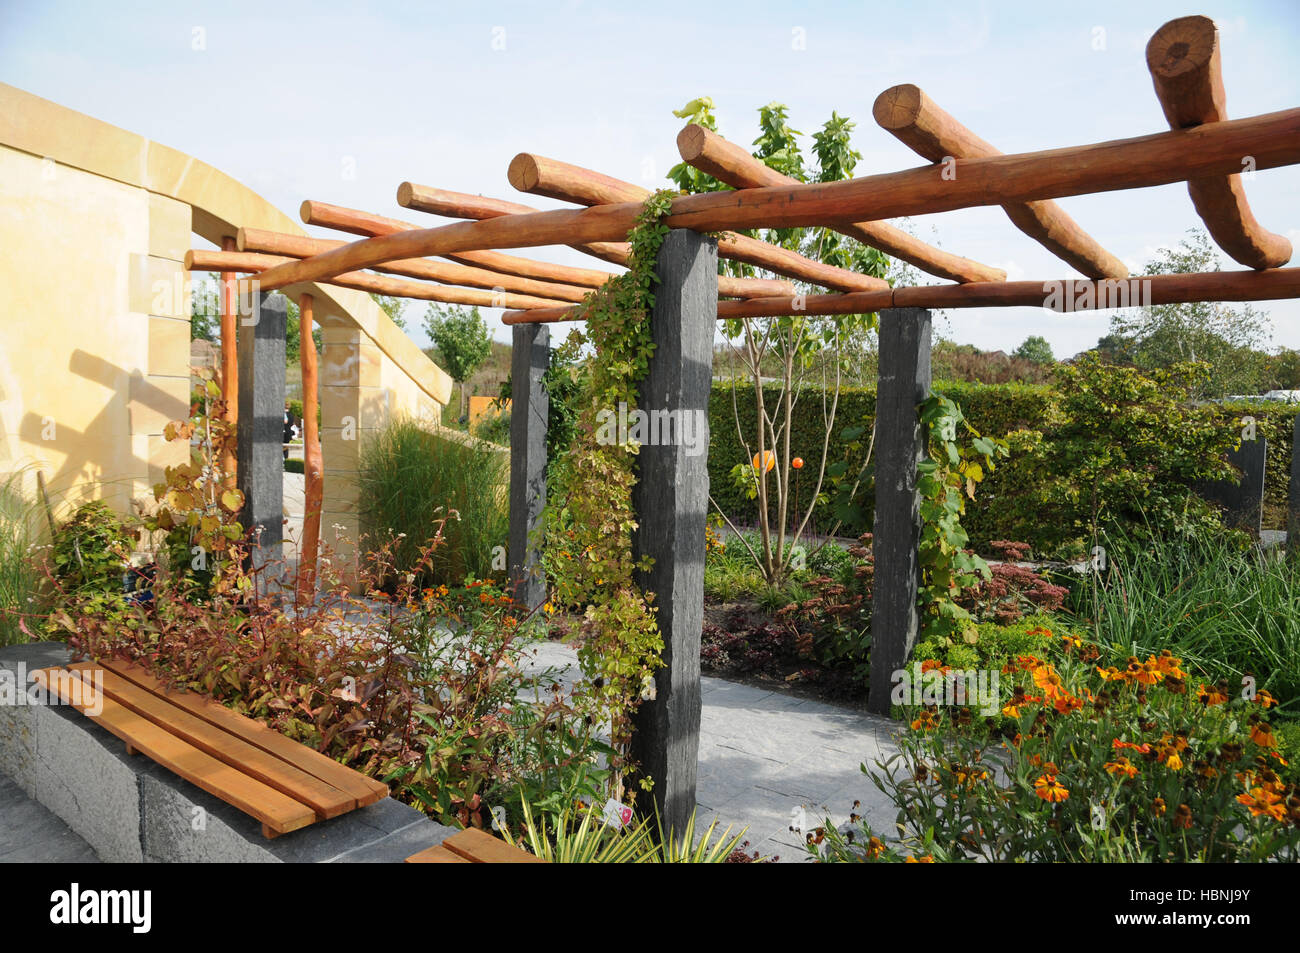 garten mit pergola aus stein und holz gemacht stockfoto. Black Bedroom Furniture Sets. Home Design Ideas